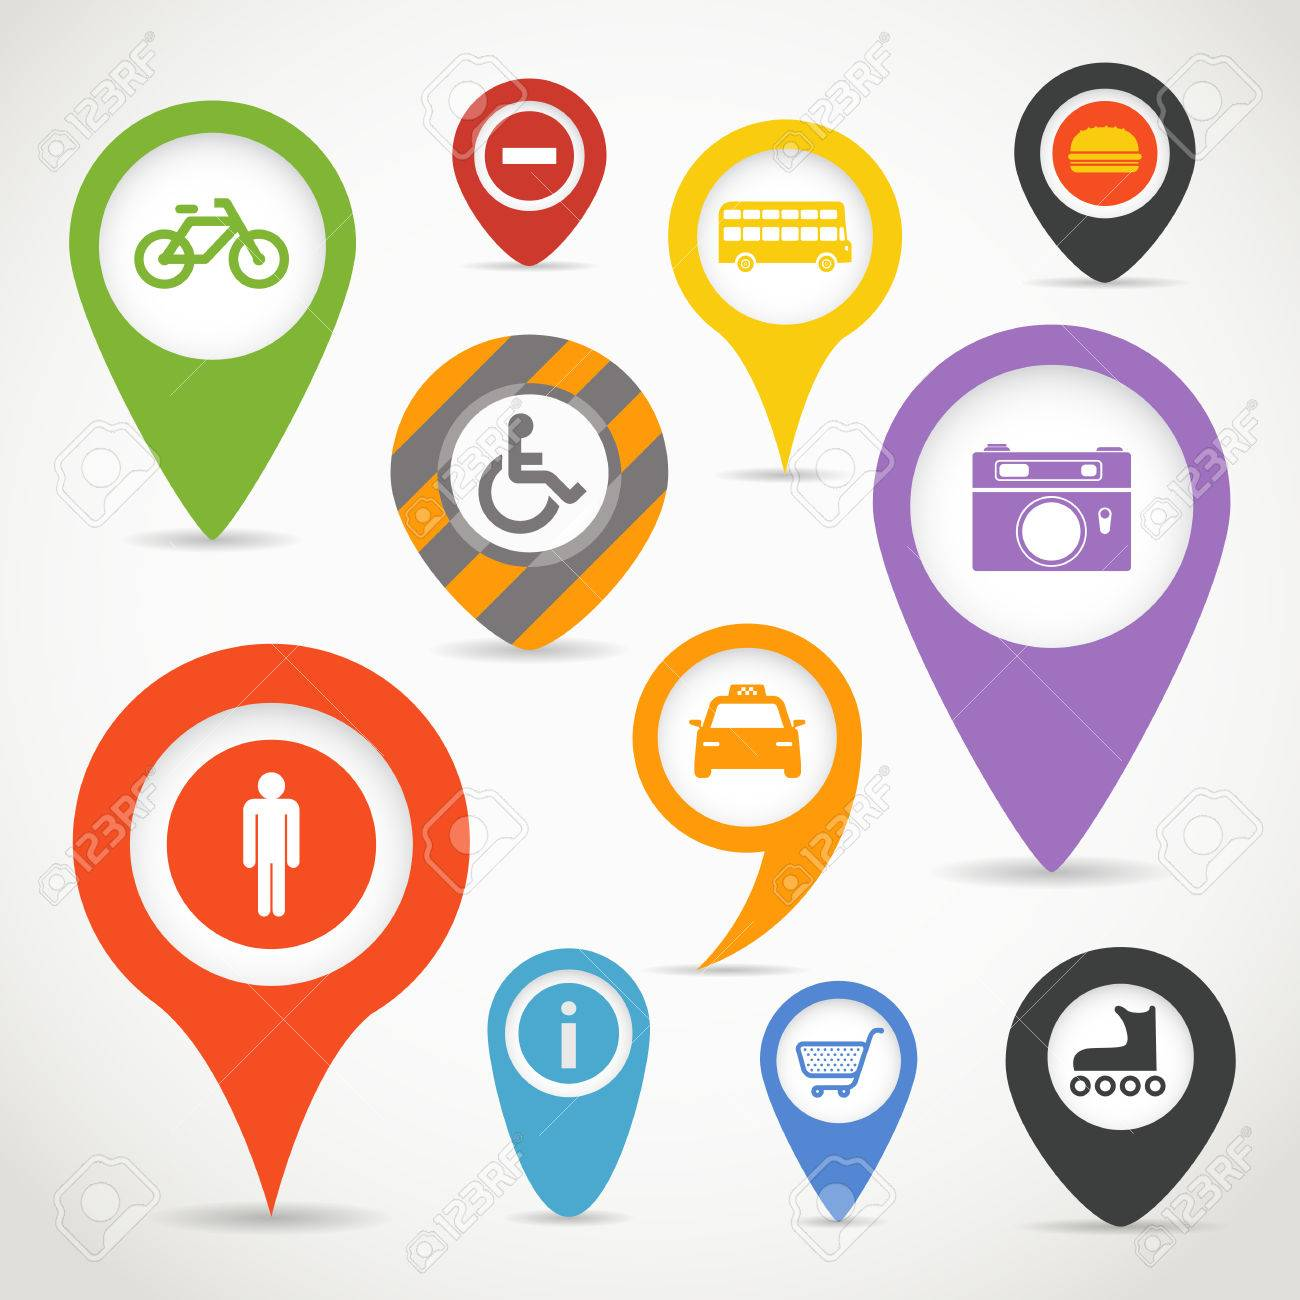 Navigation elements with transport icons - 22963288